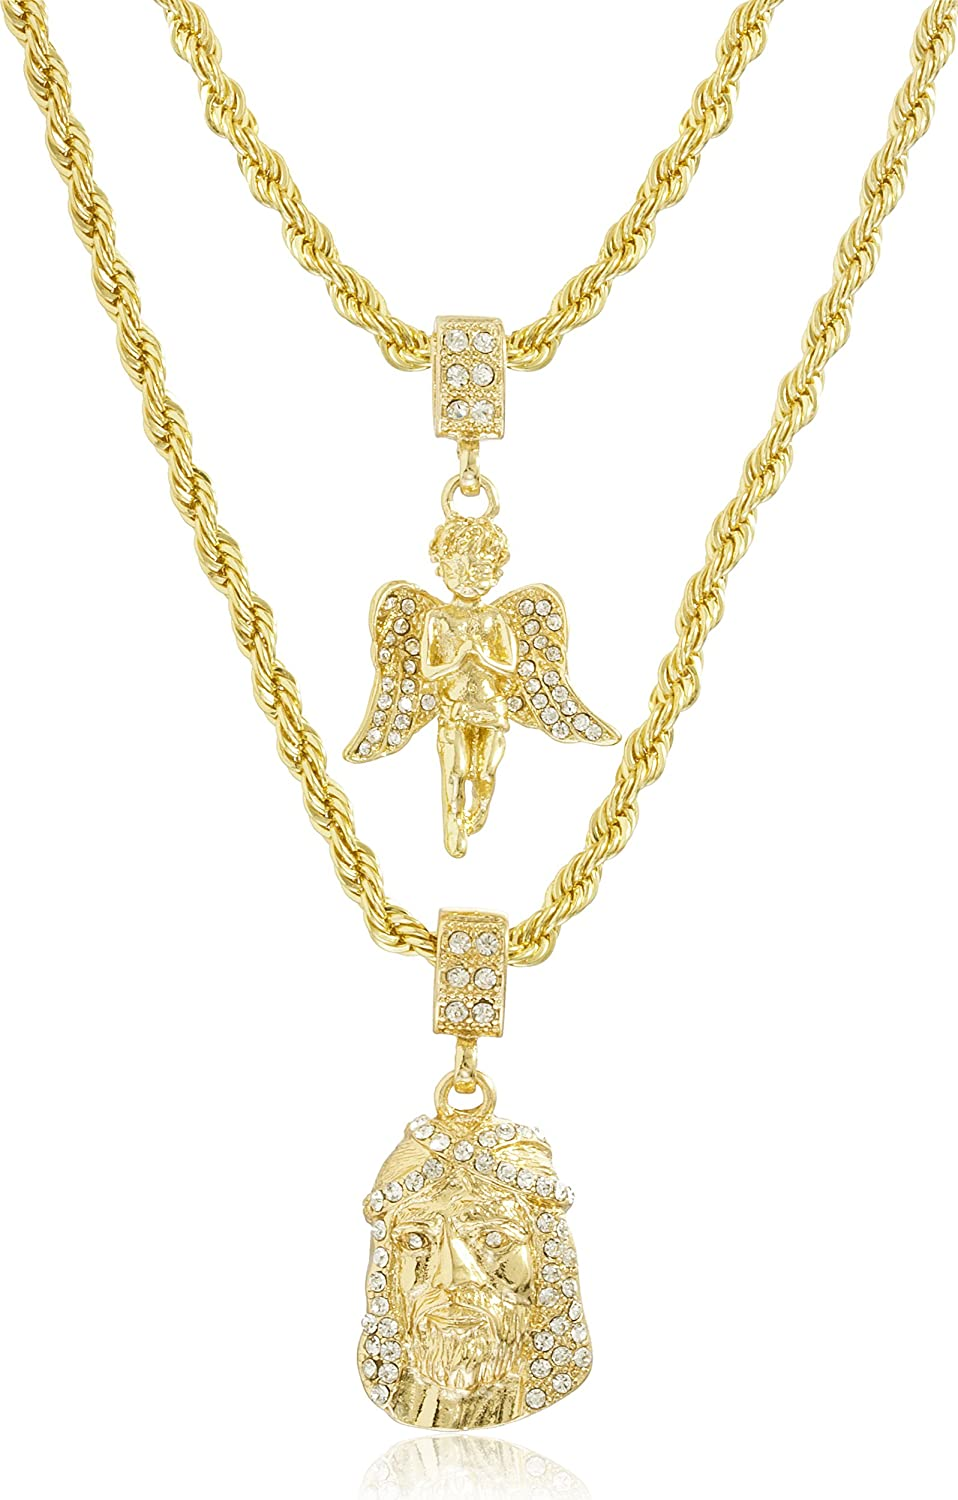 necklace jesus pendants com inch with out c amazon rope layer dp goldtone chain double angel iced